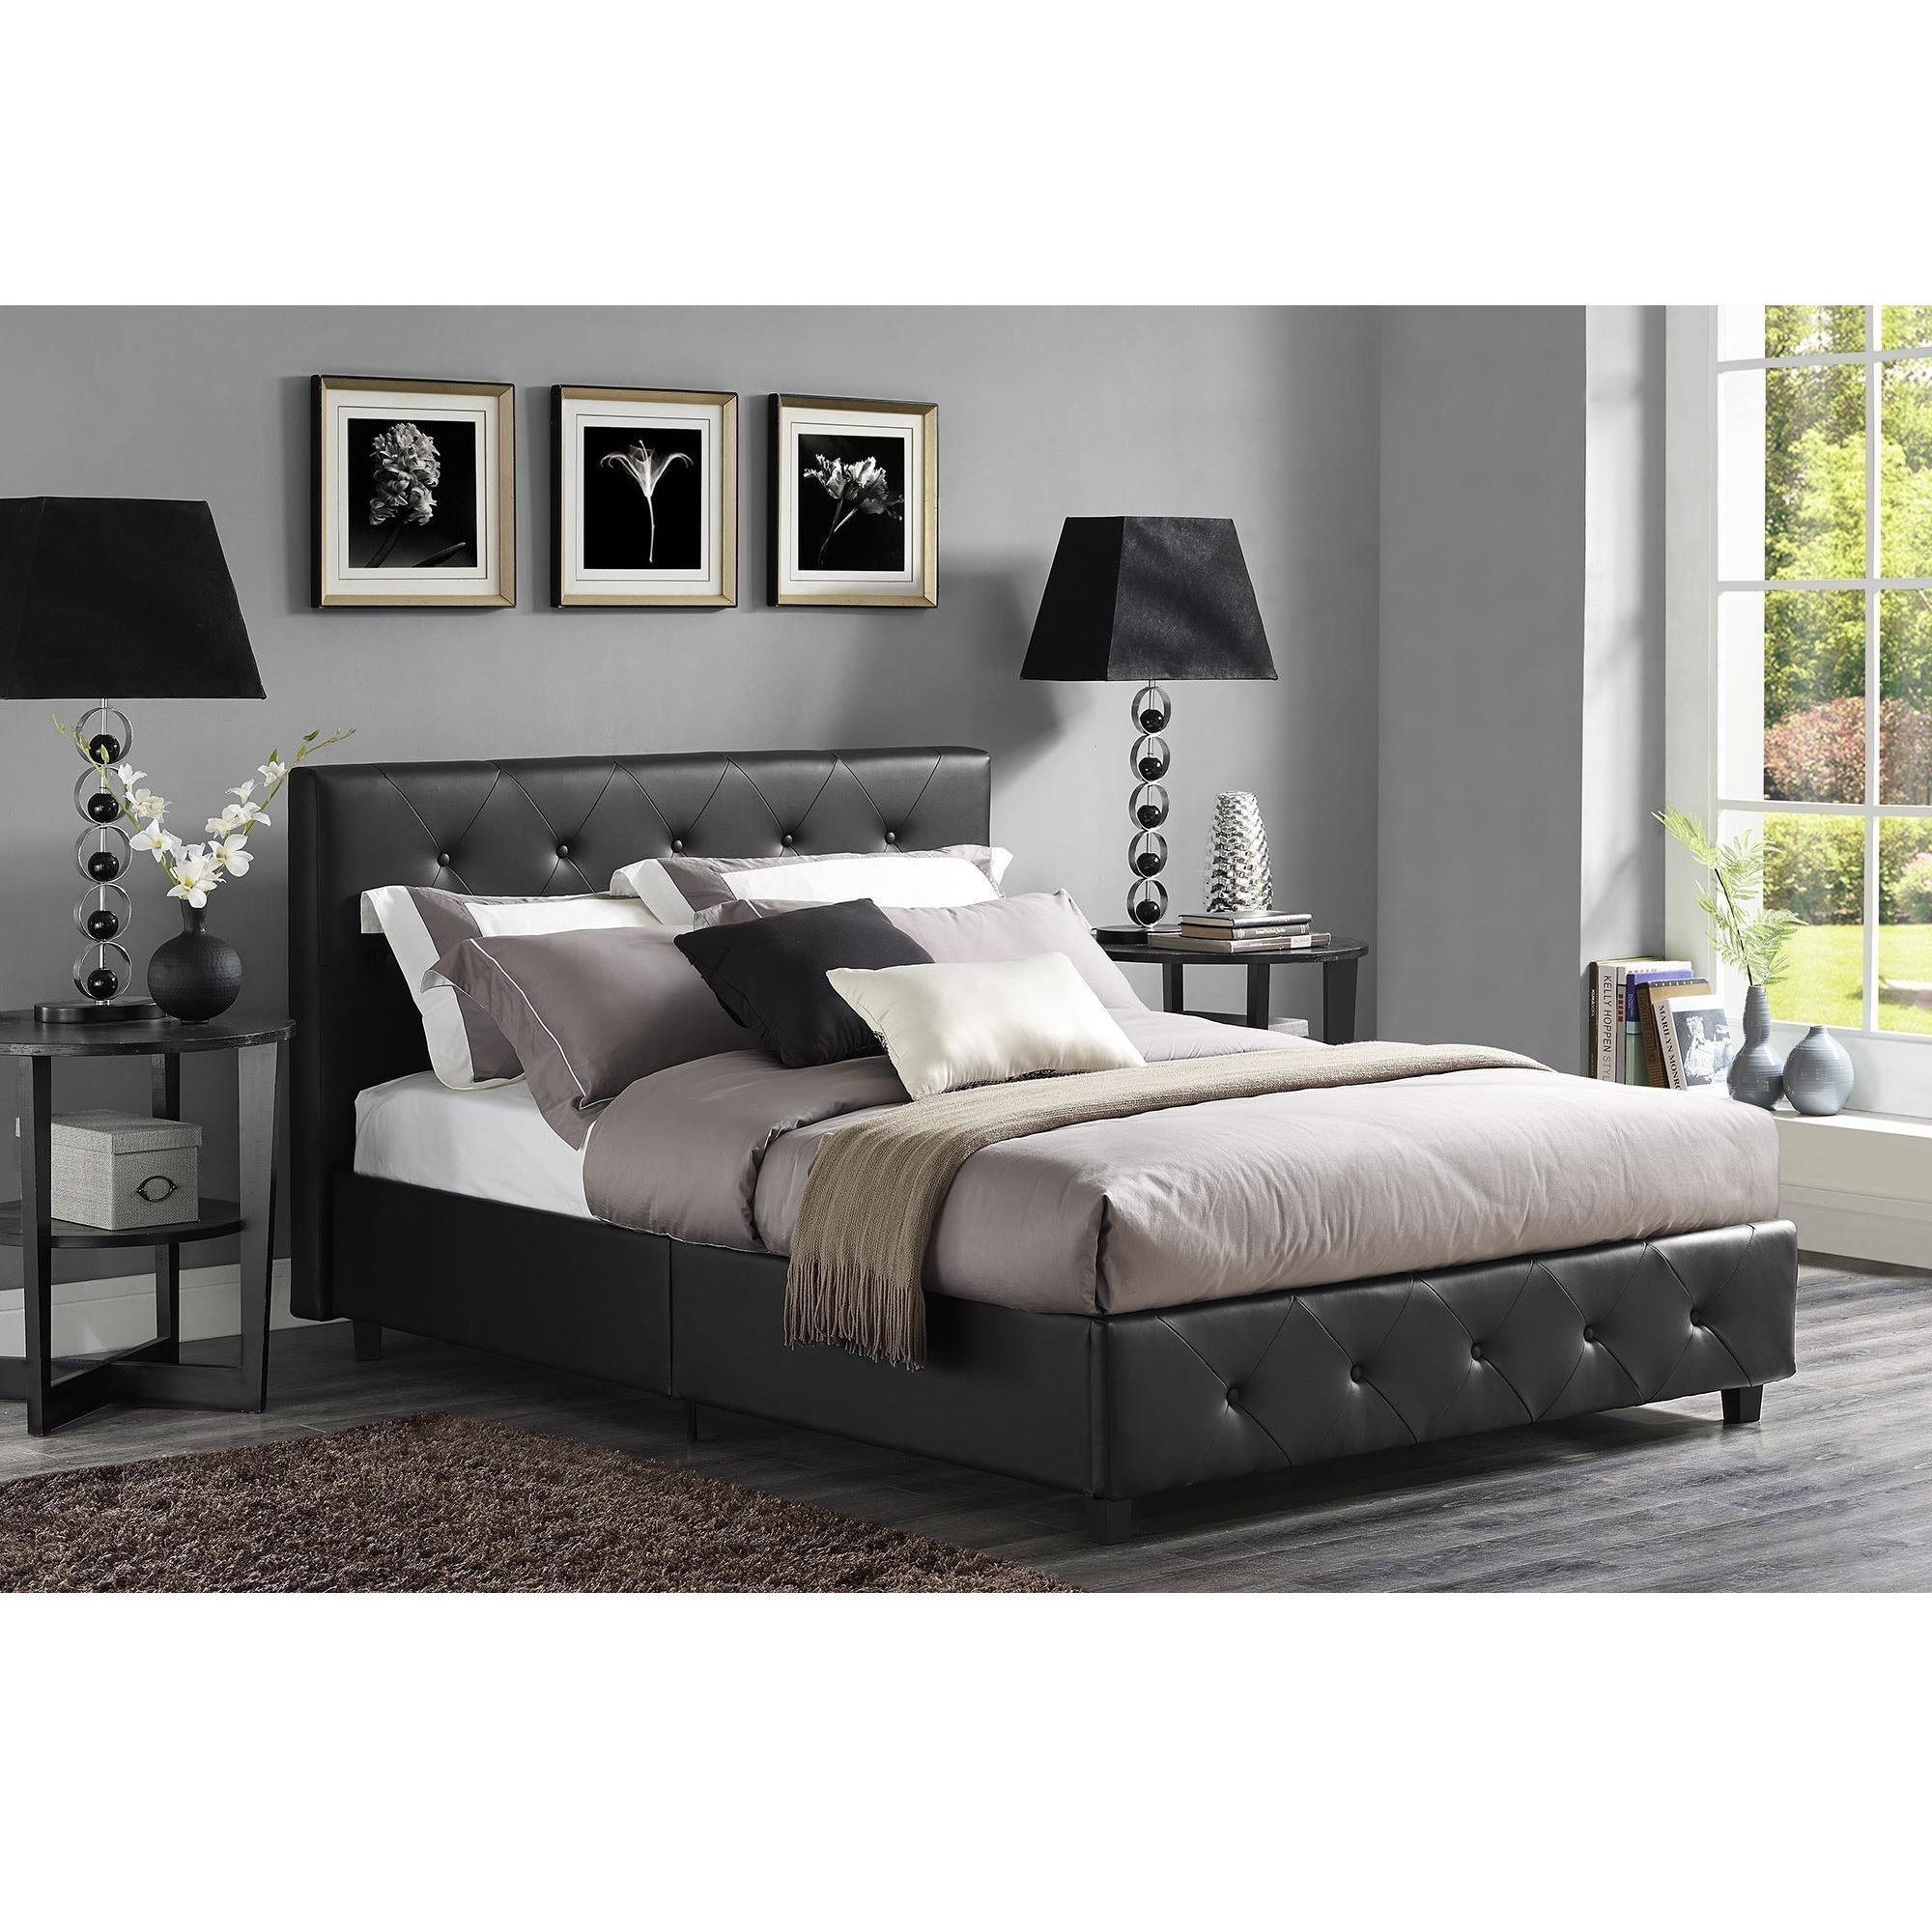 dhp dakota upholstered bed my apartment pinterest queen size